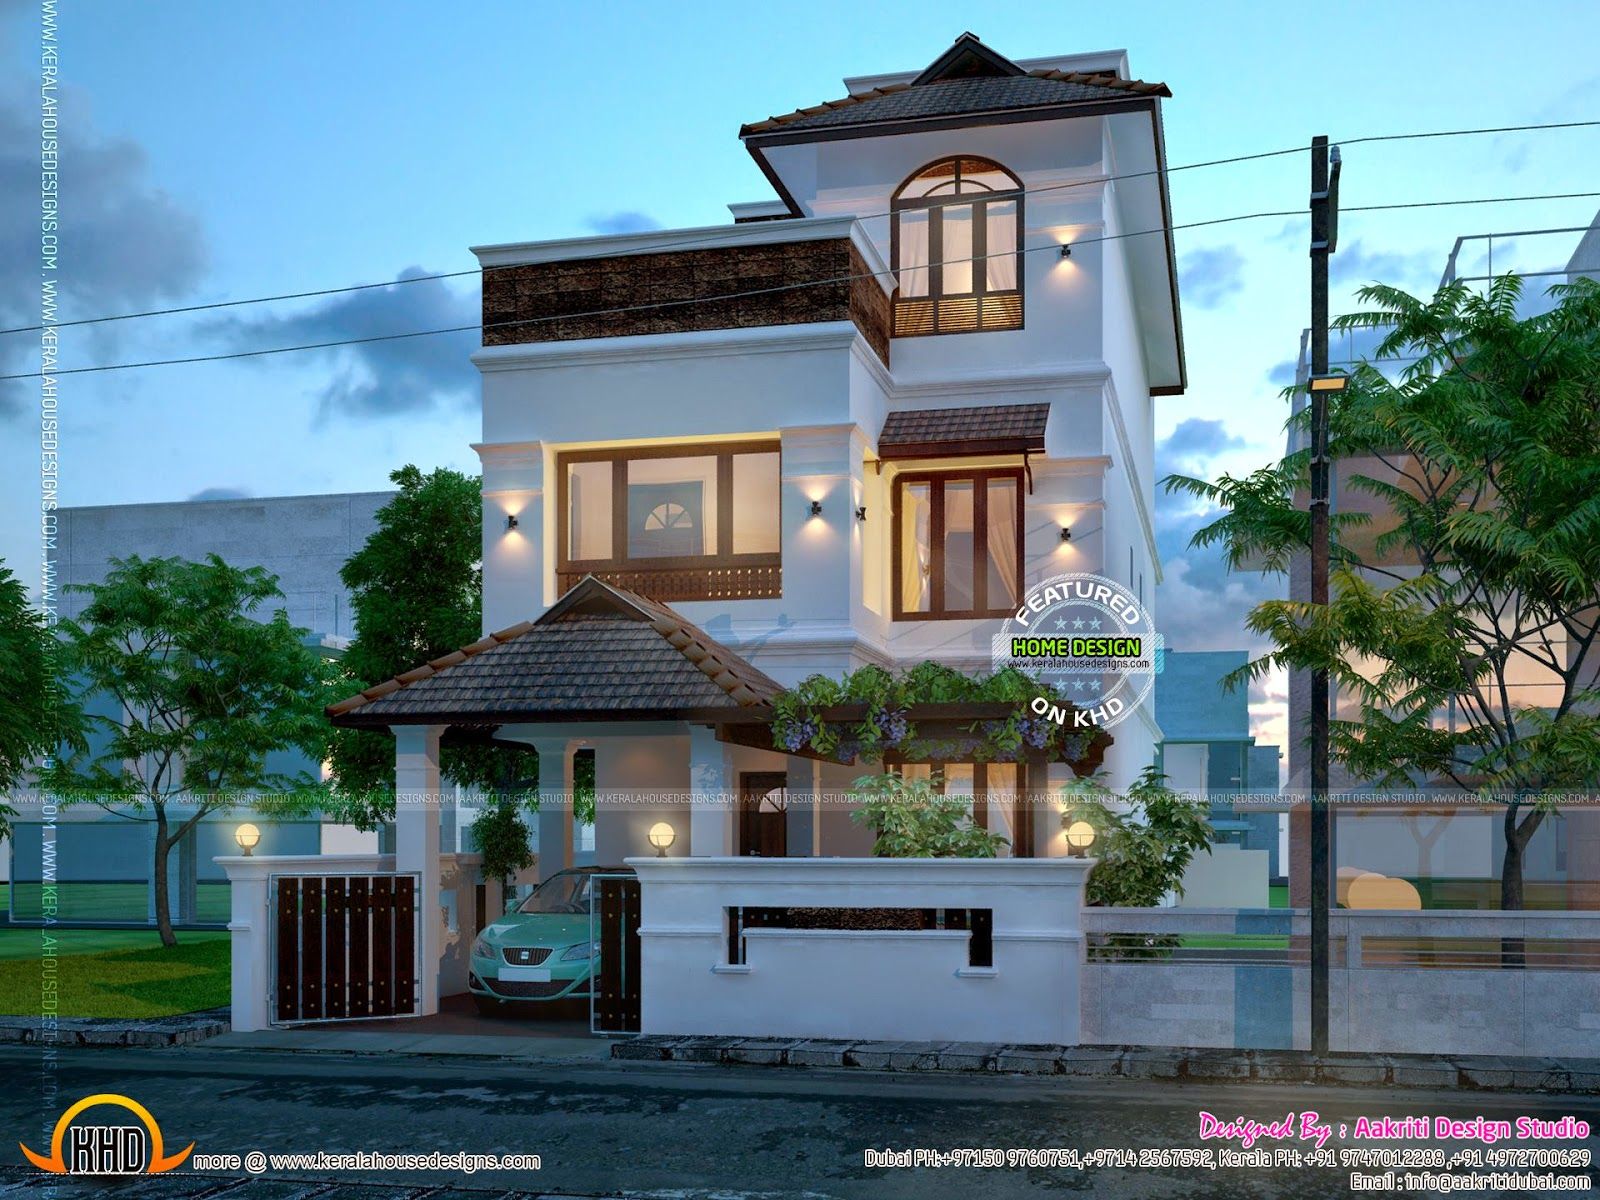 New house design kerala home design and floor plans - New homes designs photos ...